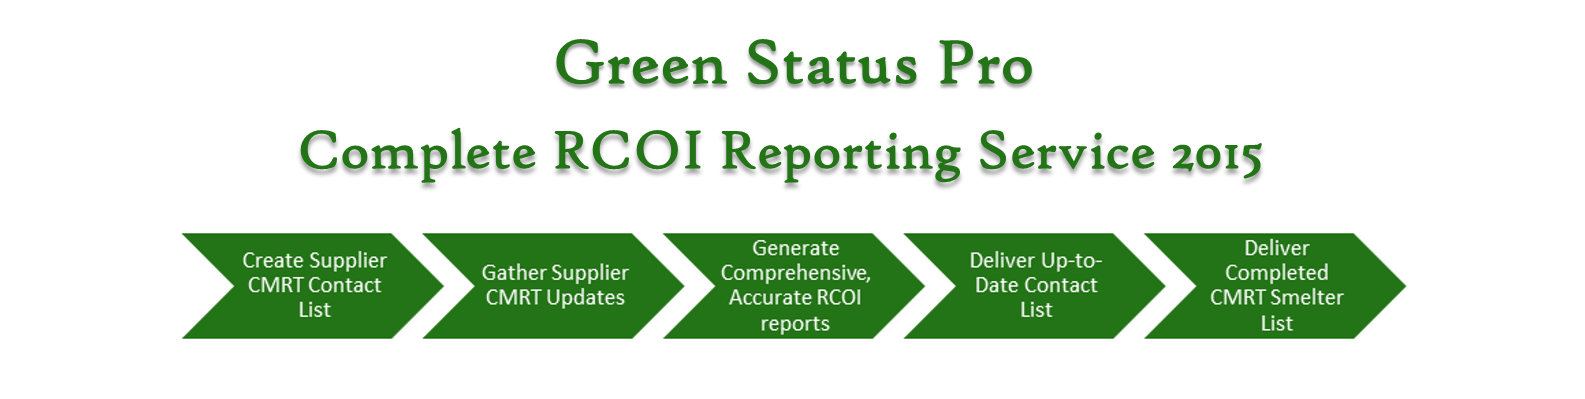 Complete RCOI Reporting Service 2015